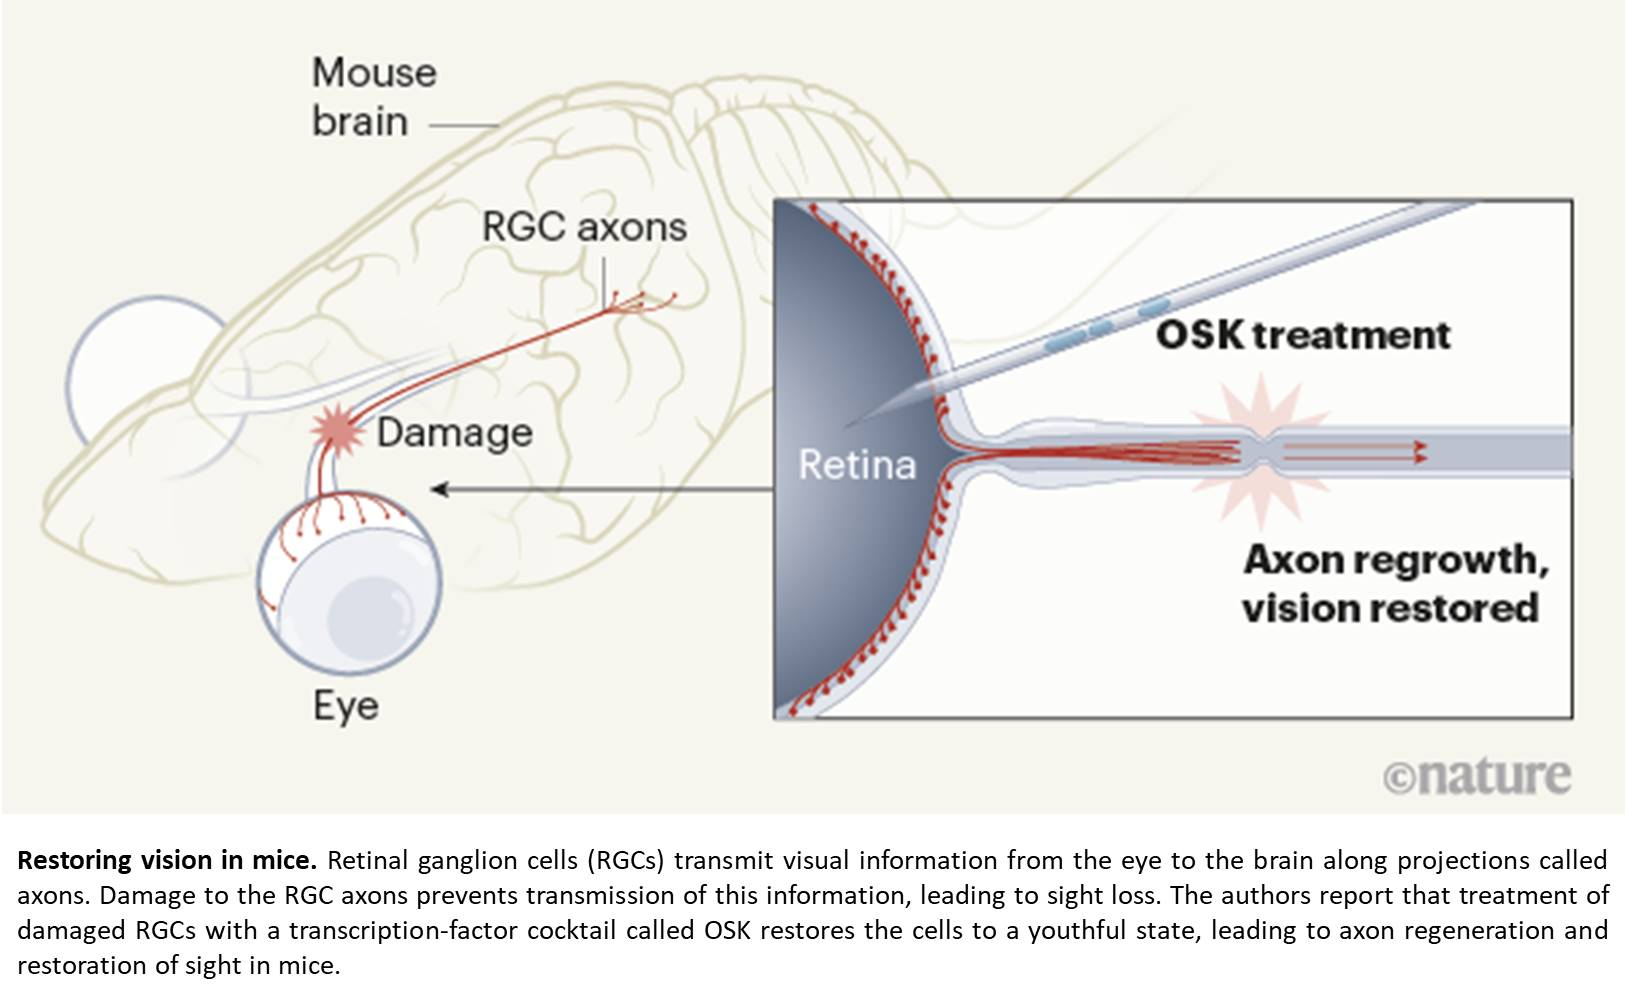 Restoring vision by turning back epigenetic information in glaucoma and aging mice